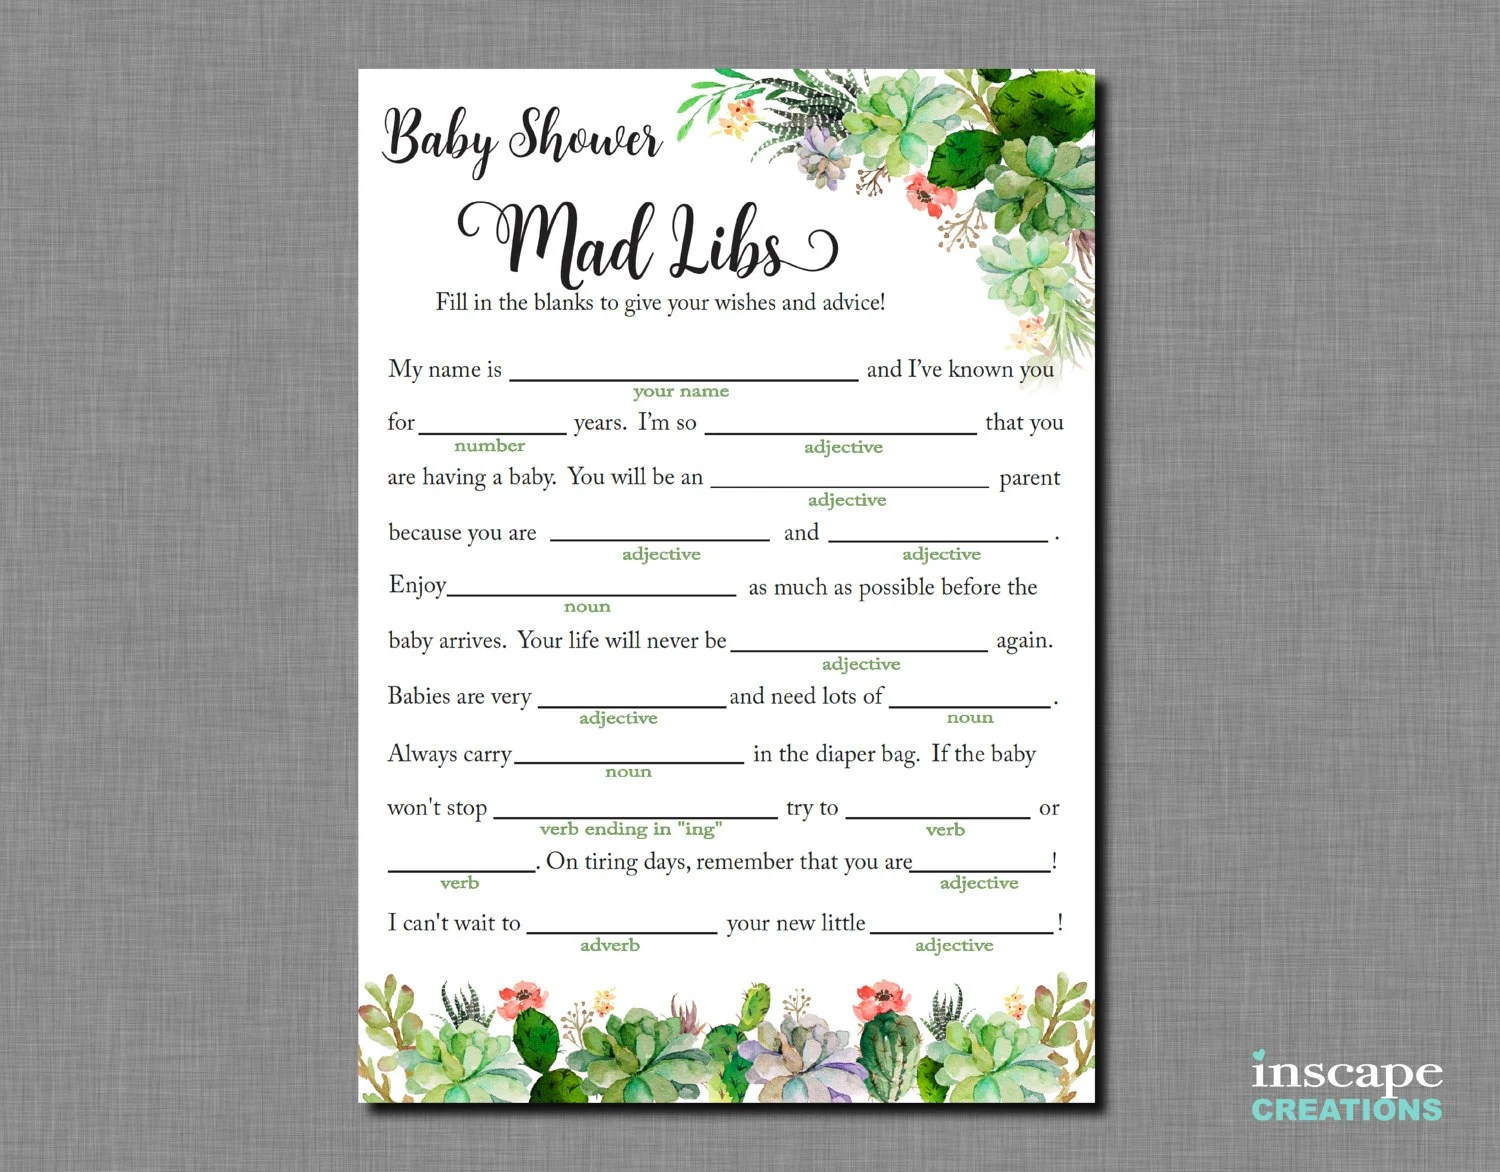 Mad Libs Succulent Baby Shower Mad Libs Game Printable